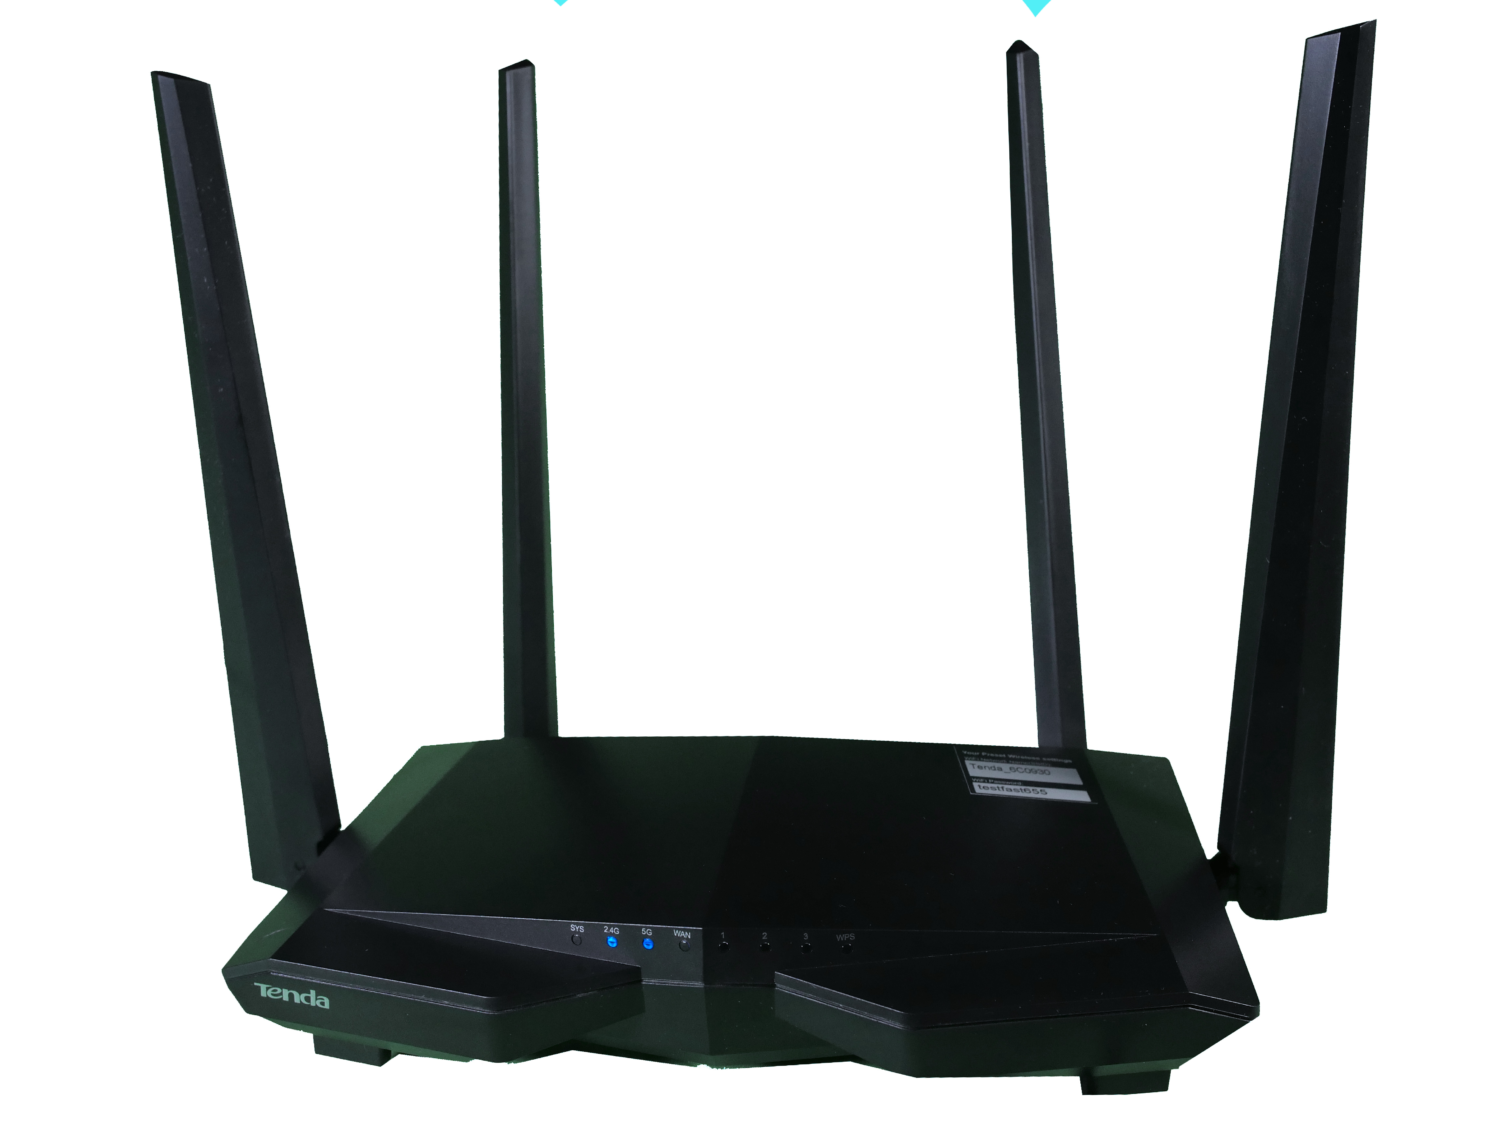 These Router Settings Can Increase Your Security and Performance